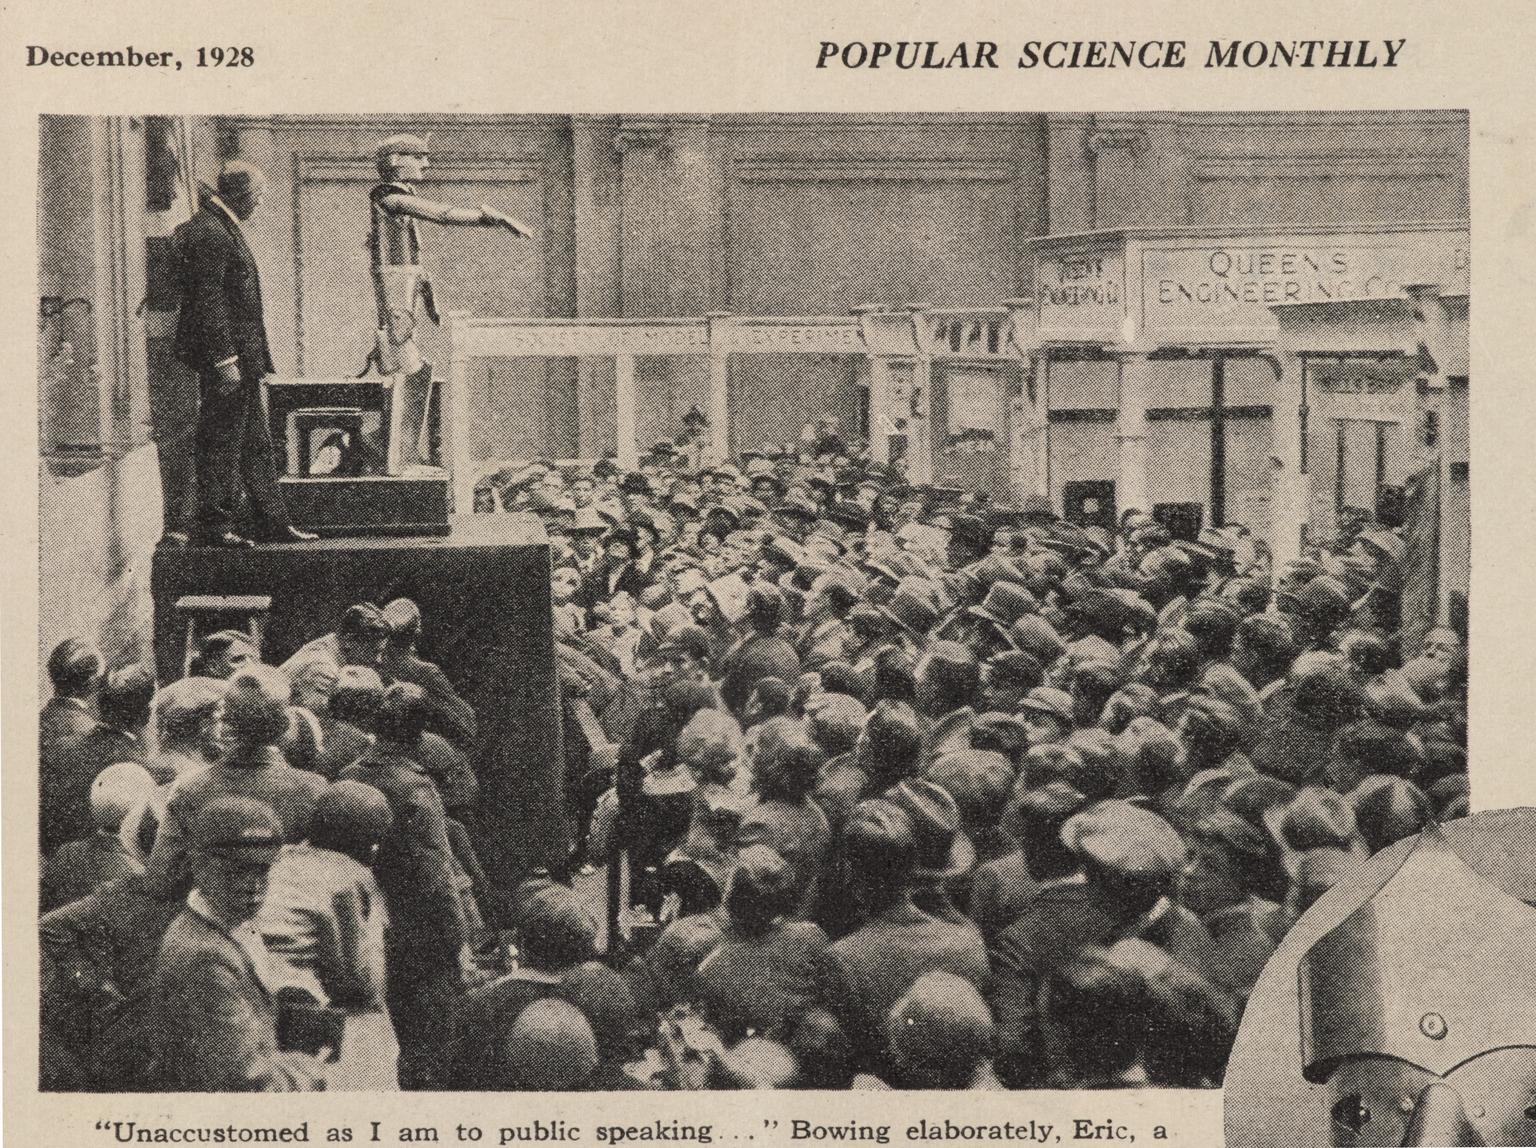 popular-science-monthly-december-1928-showing-eric-the-talking-robot-opening-the-model-engineering-exhibition-in-london